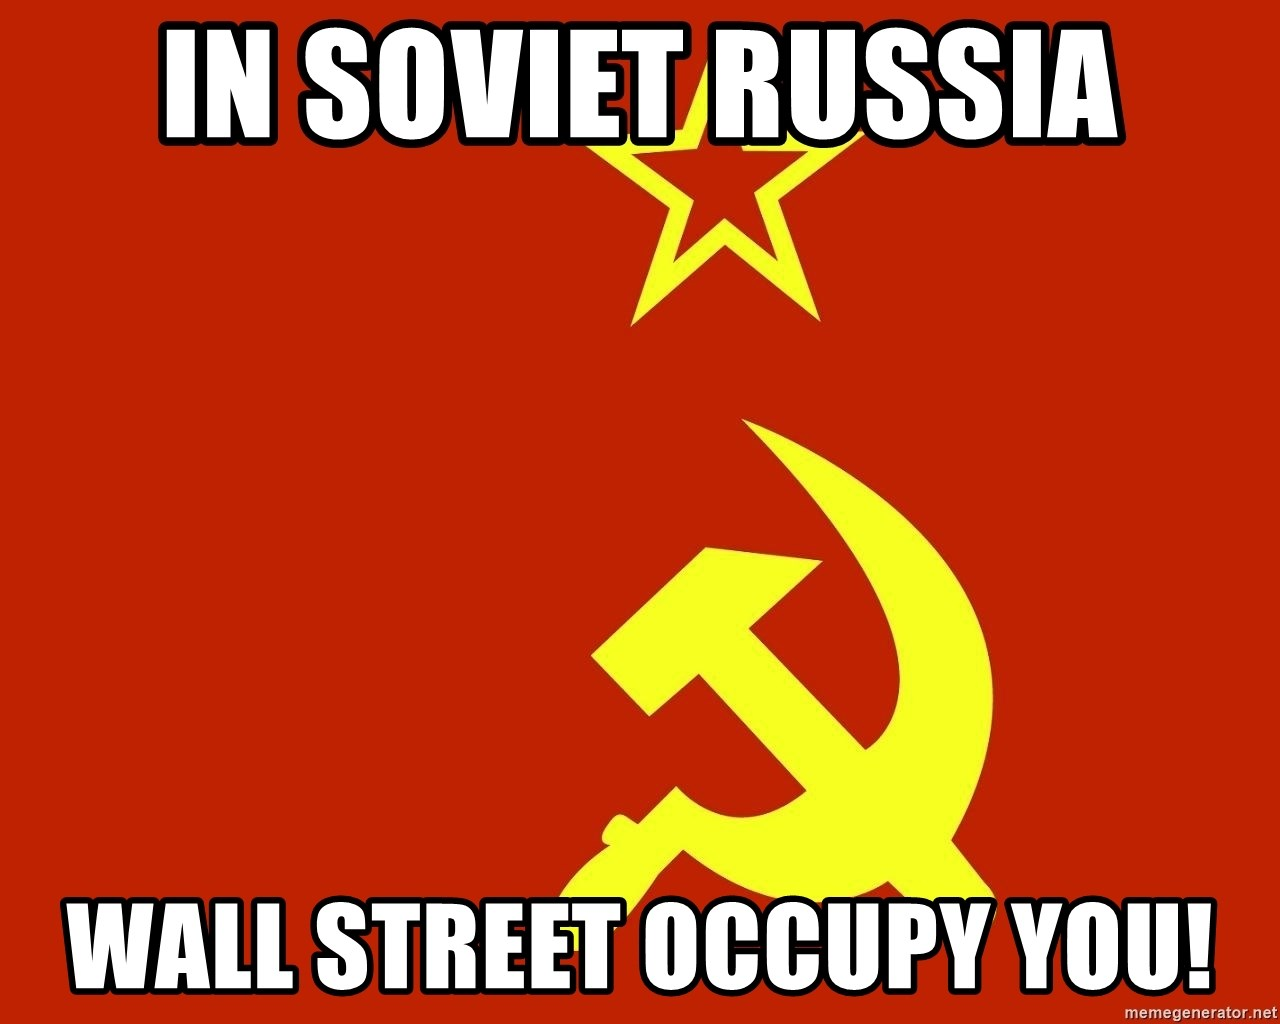 In Soviet Russia - In soviet russia wall street occupy you!